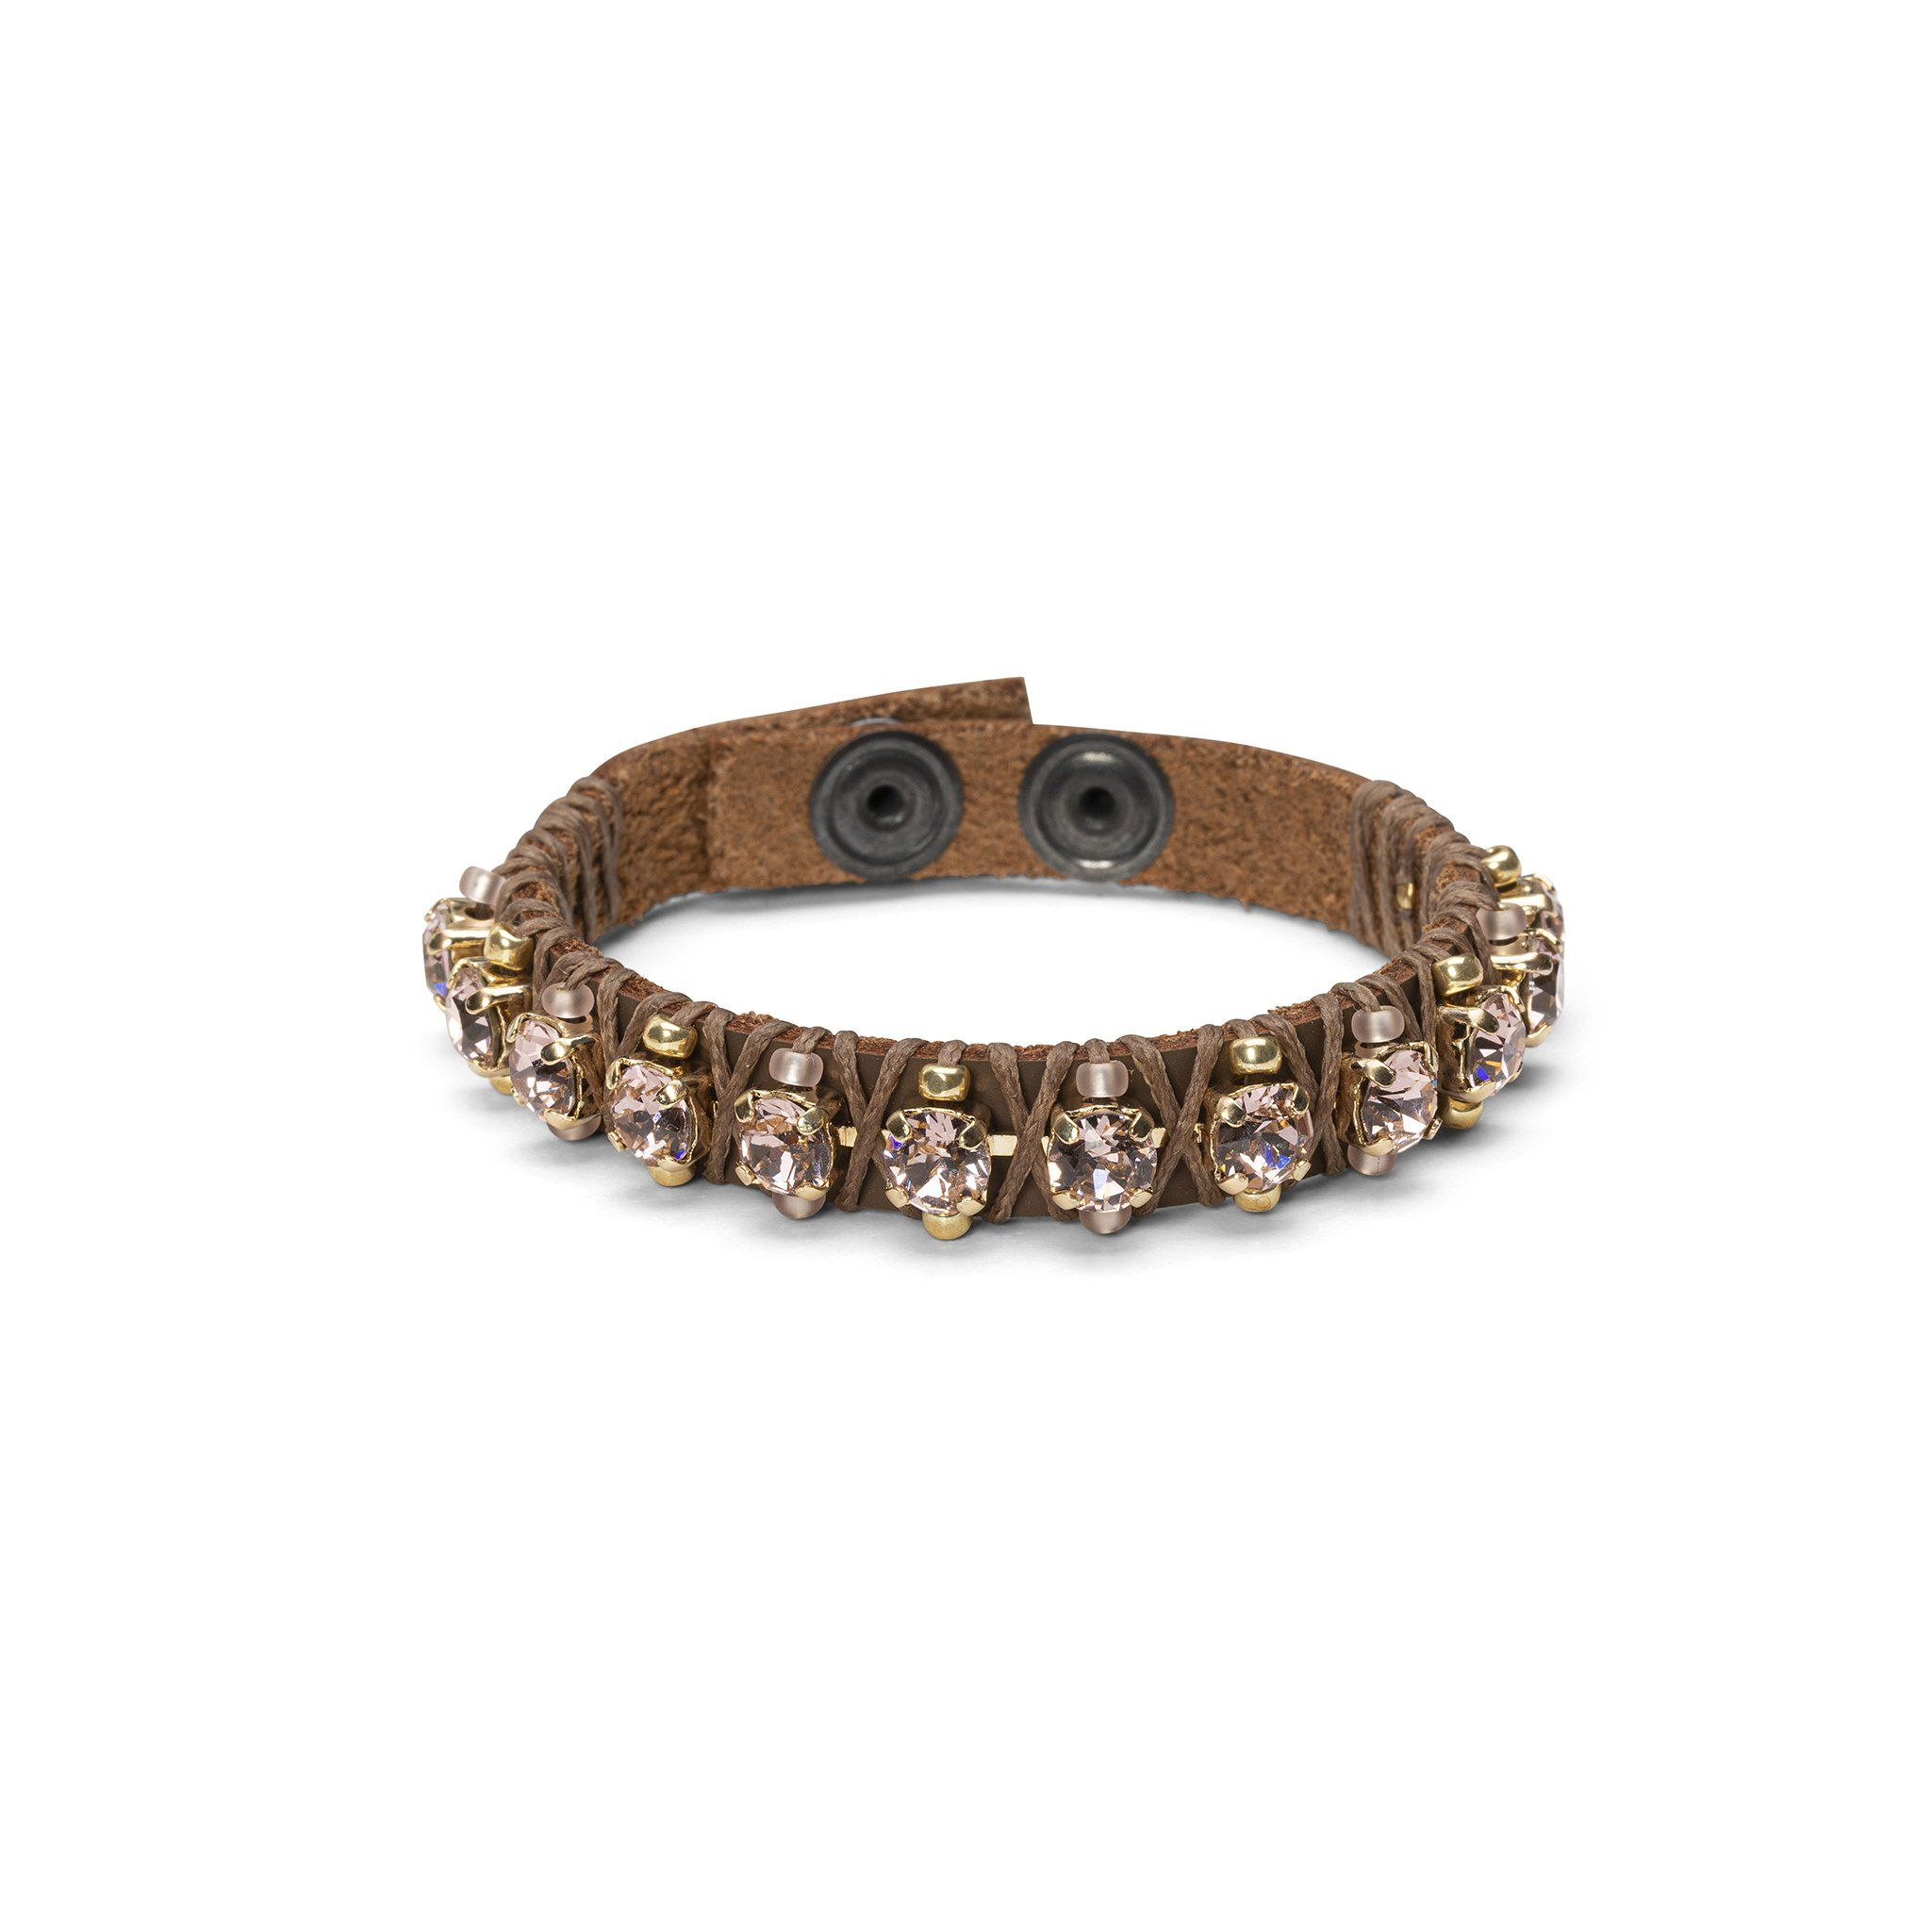 North Star Bracelet - Rose